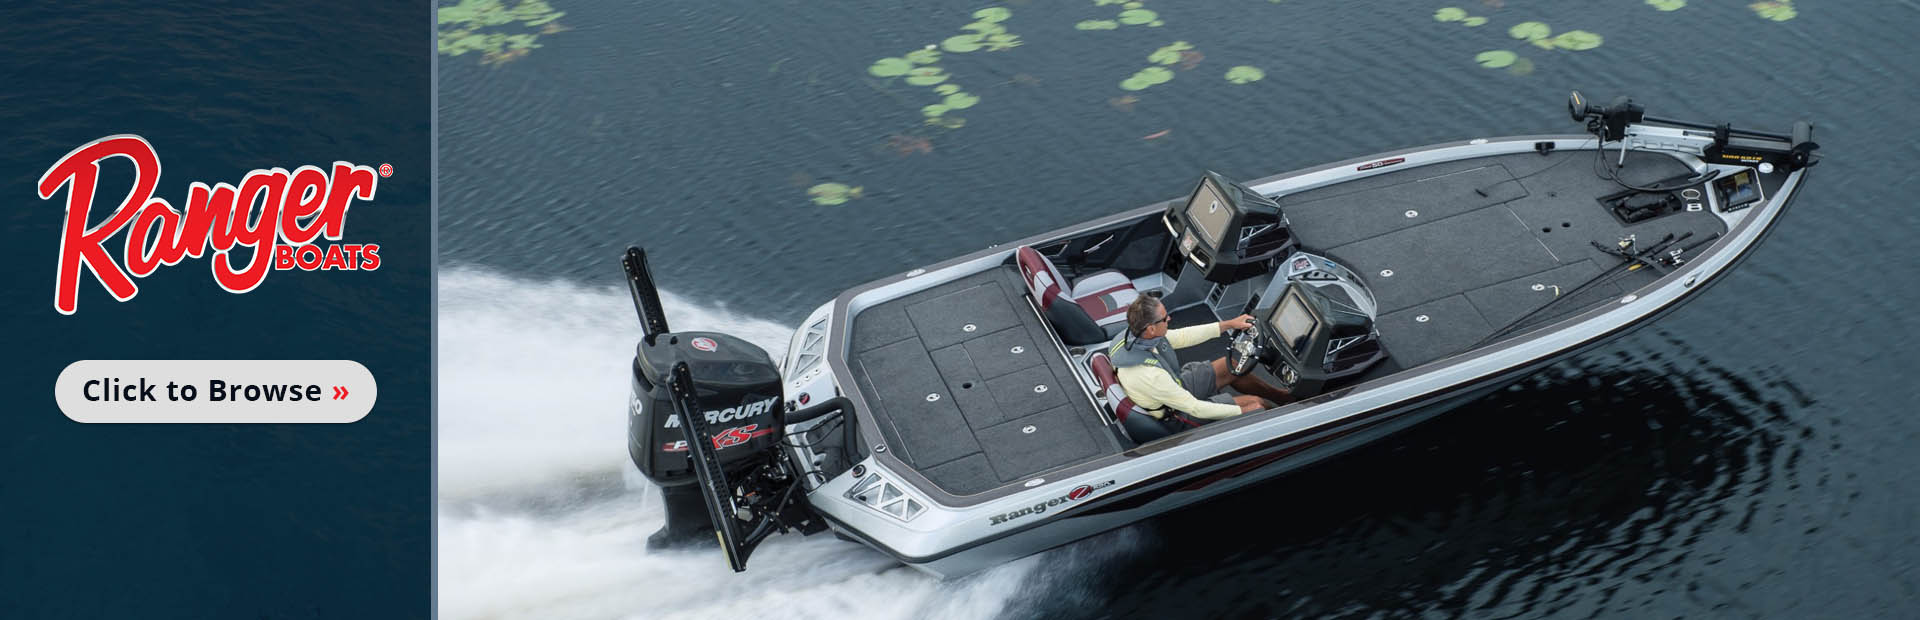 The quality's built in so the memories stand out. Click here to browse our Ranger boats.